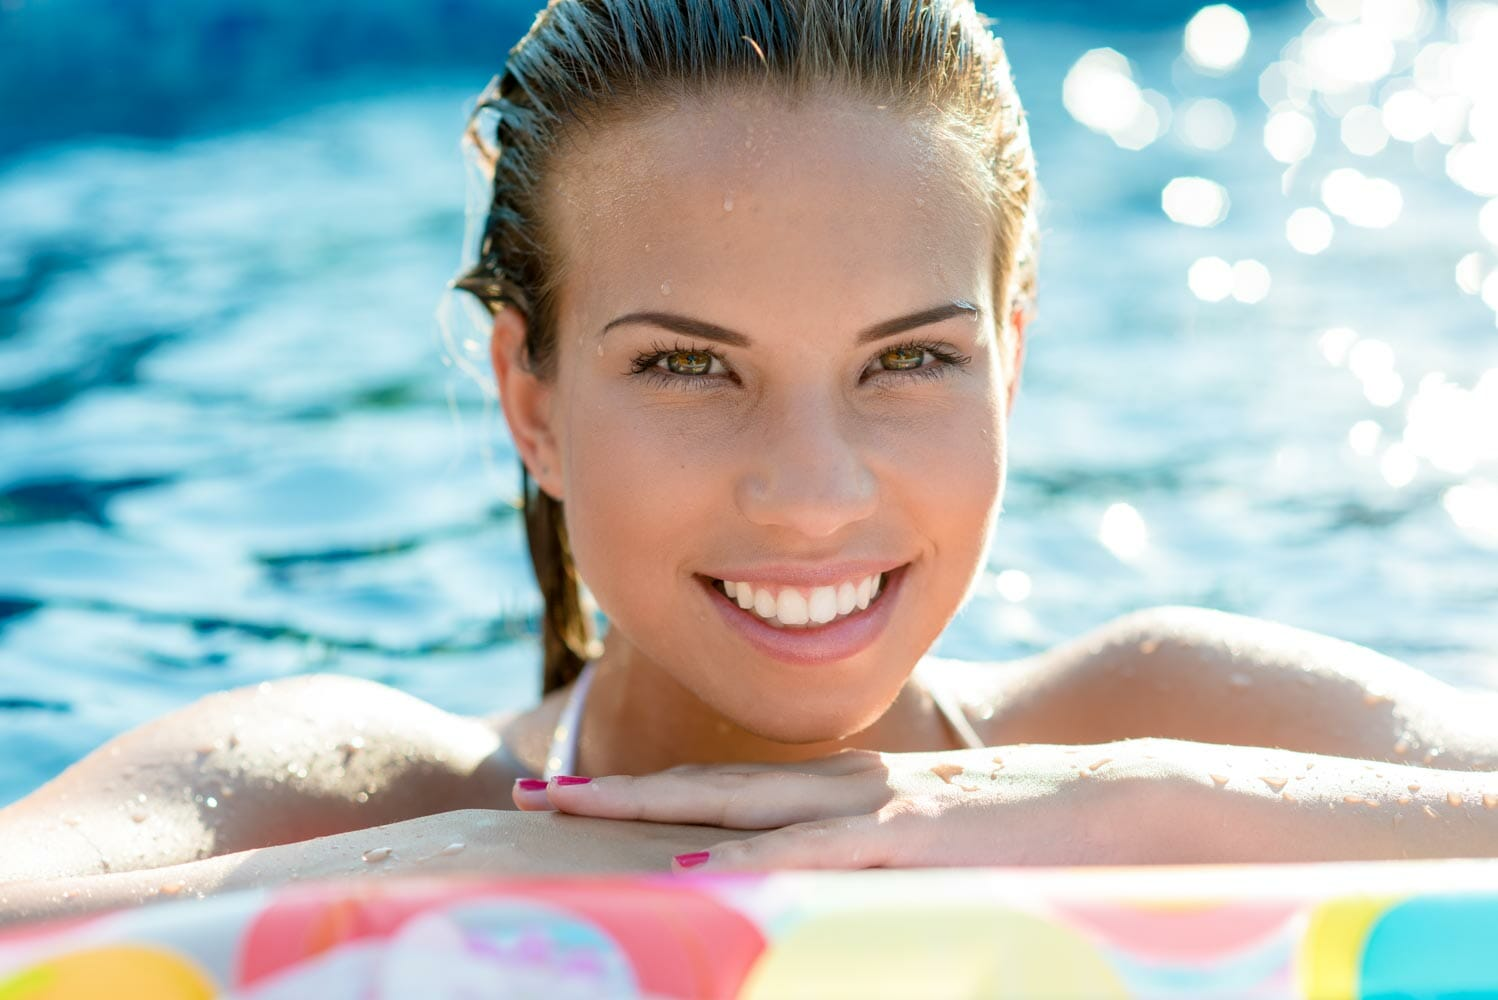 Getting To The Point of Microneedling